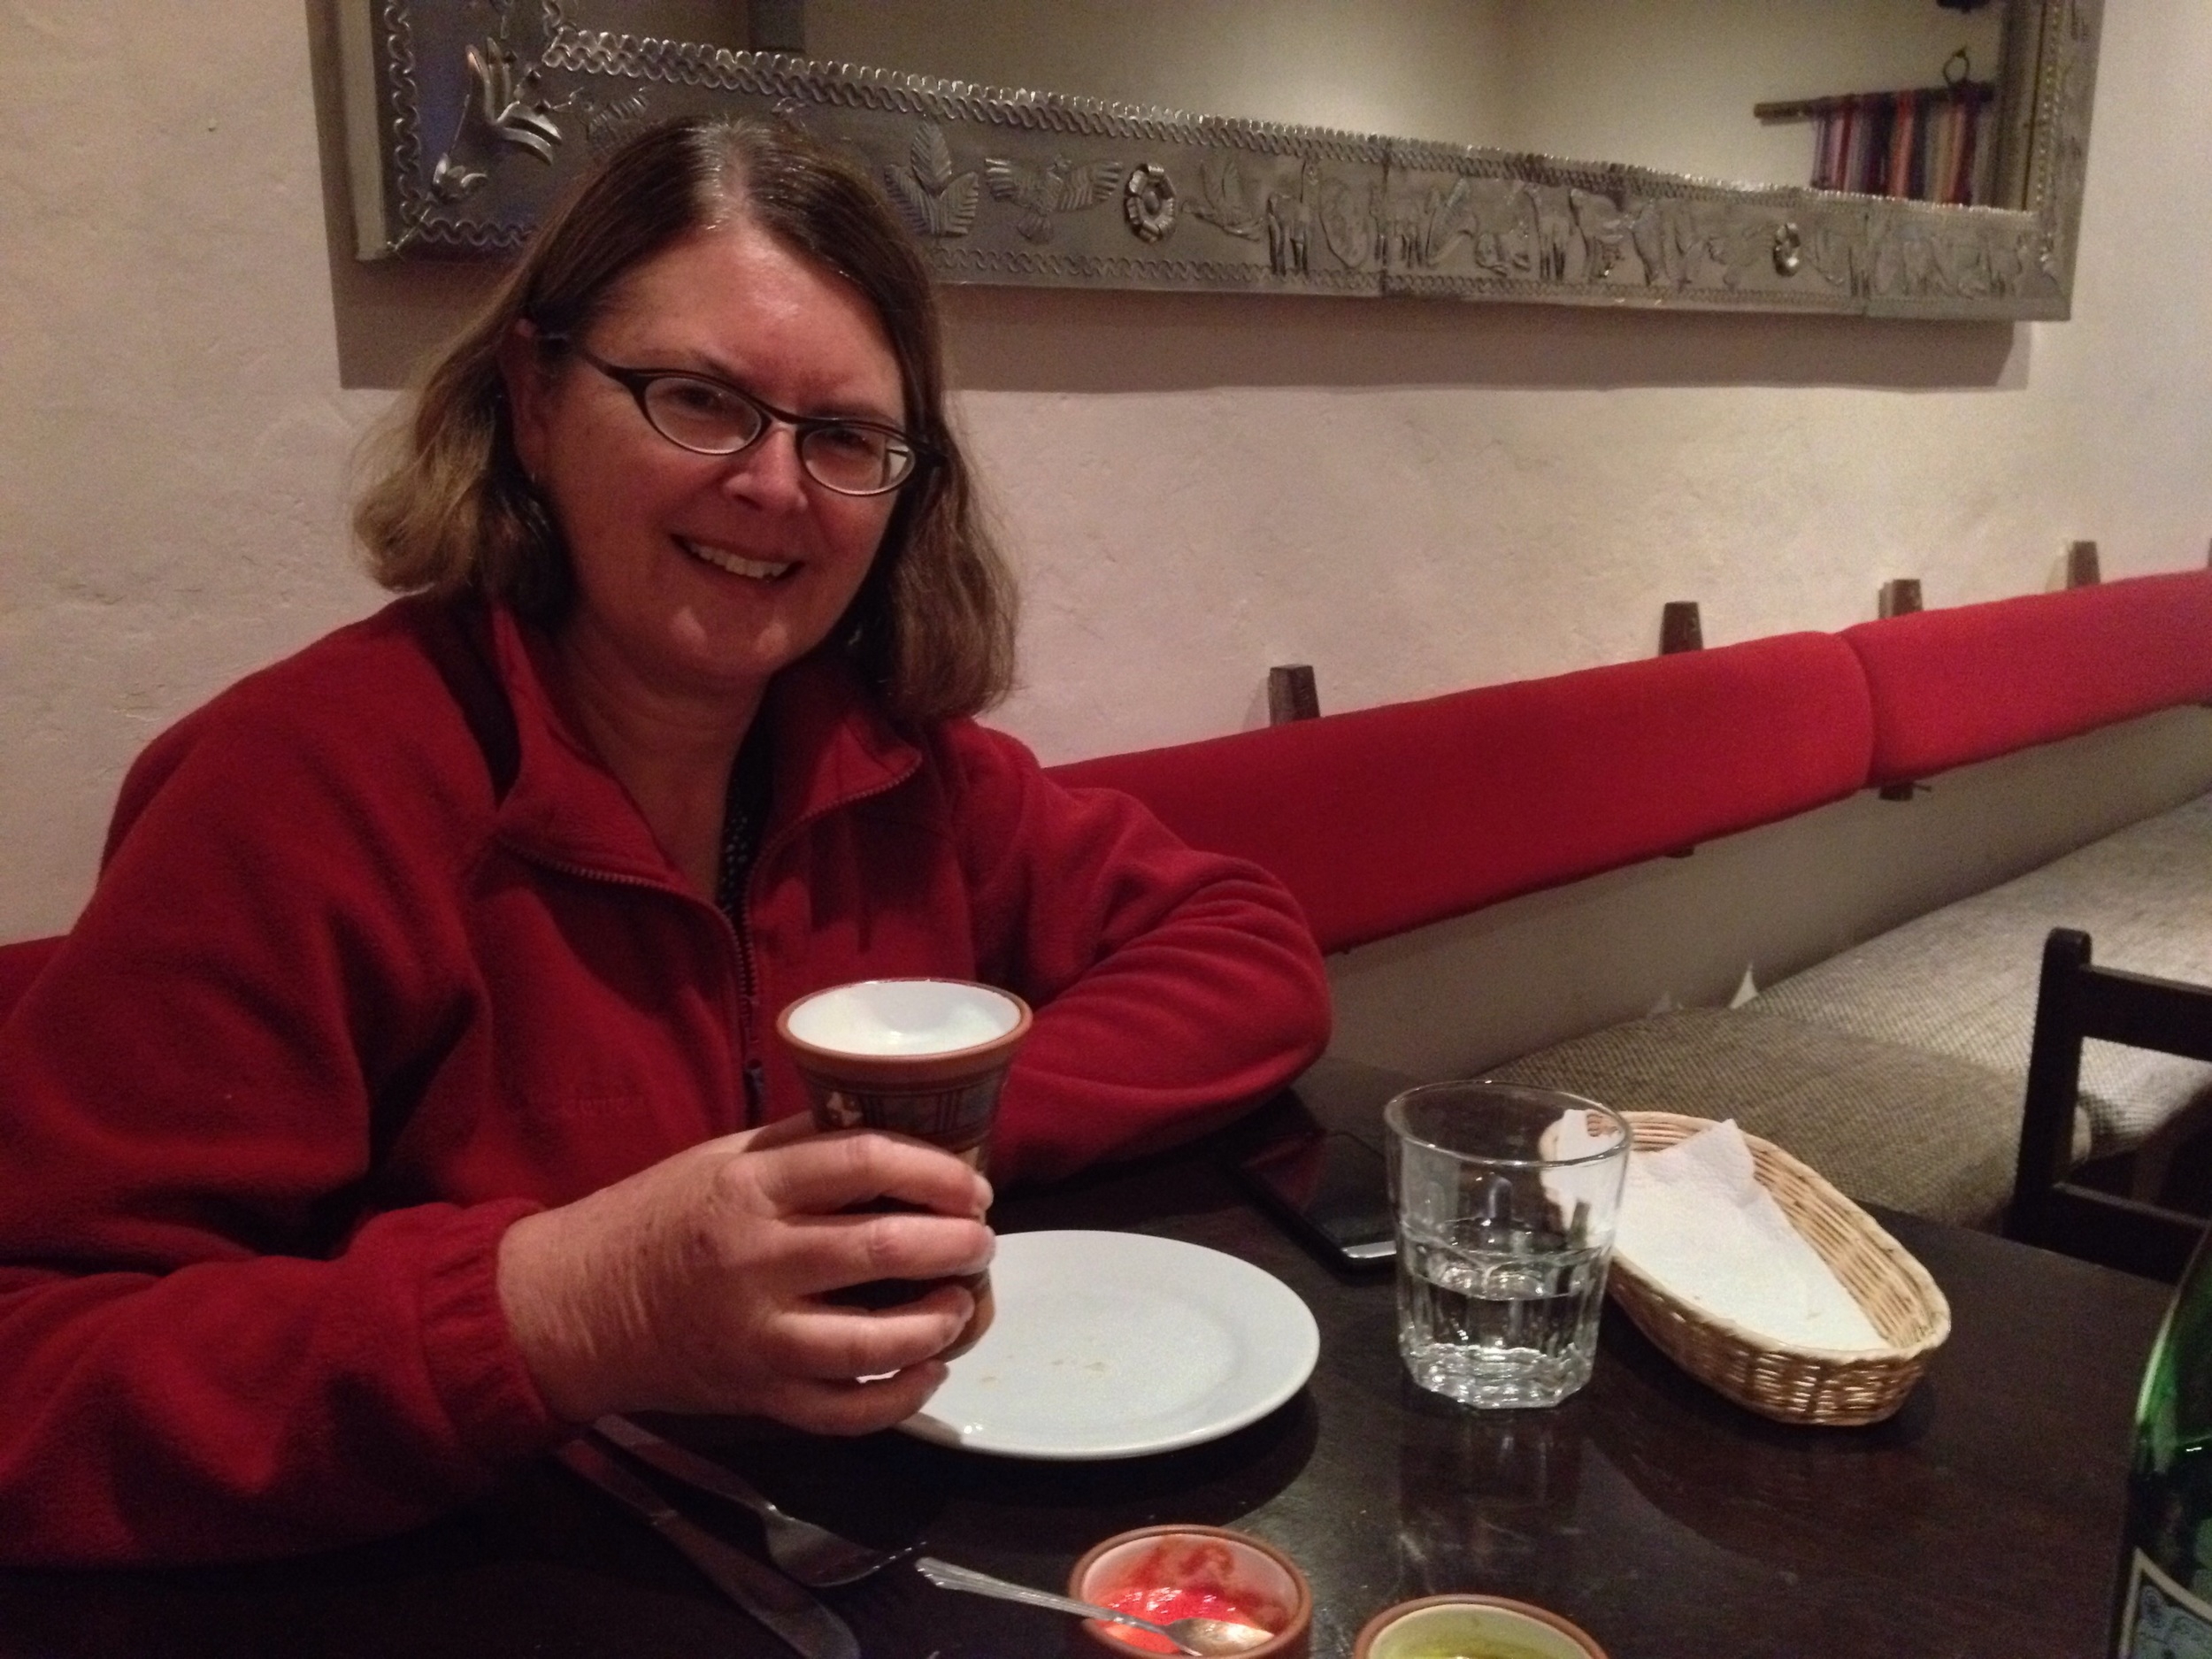 The Pisco Sour is a popular drink